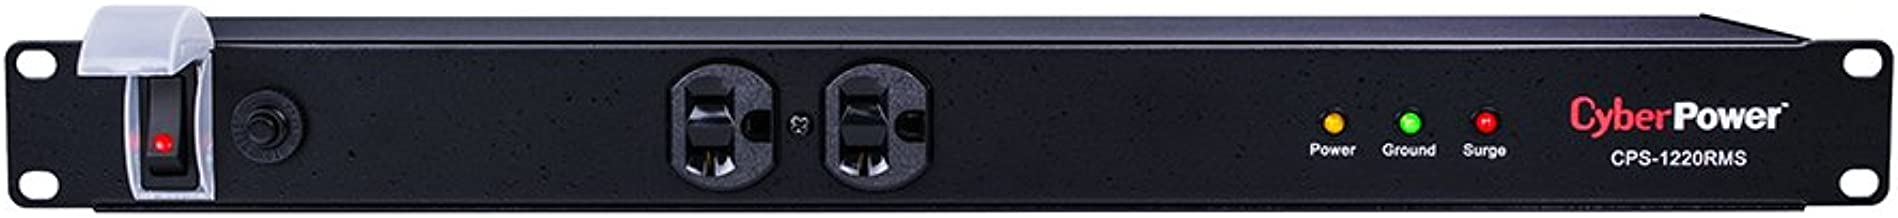 CyberPower CPS1220RMS Surge Protector, 120V/20A, 12 Outlets, 15ft Power Cord, 1U Rackmount